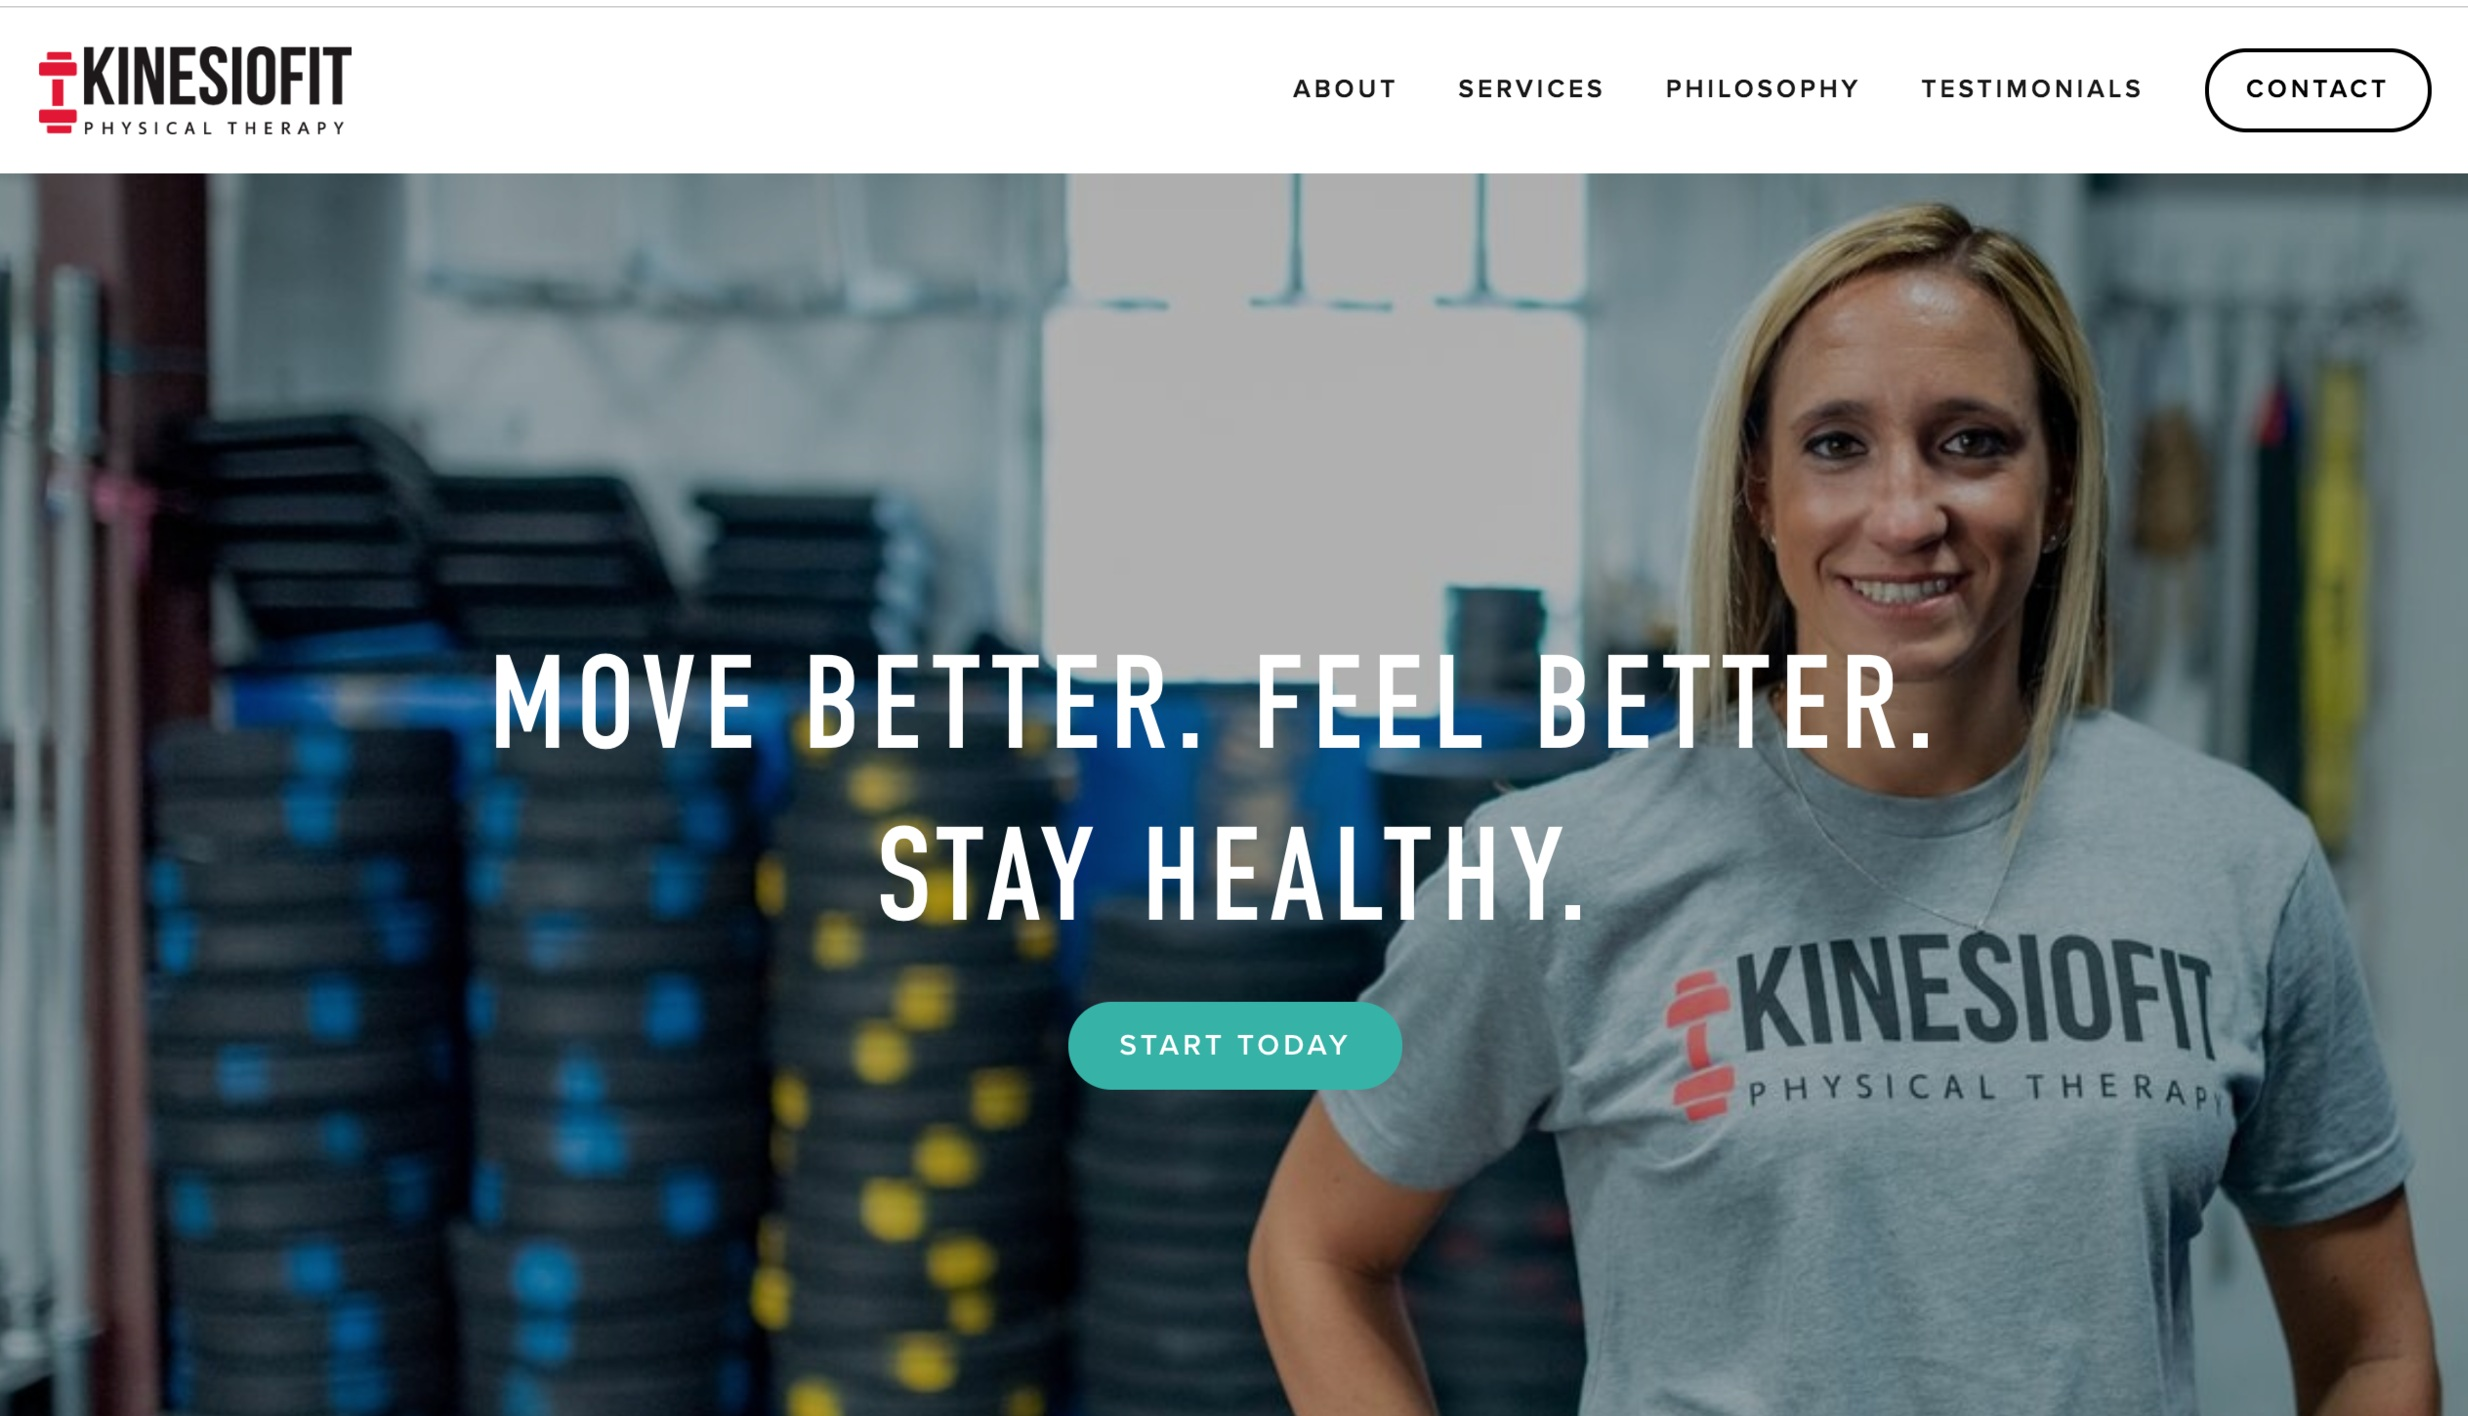 KiniseoFit Physical Therapy